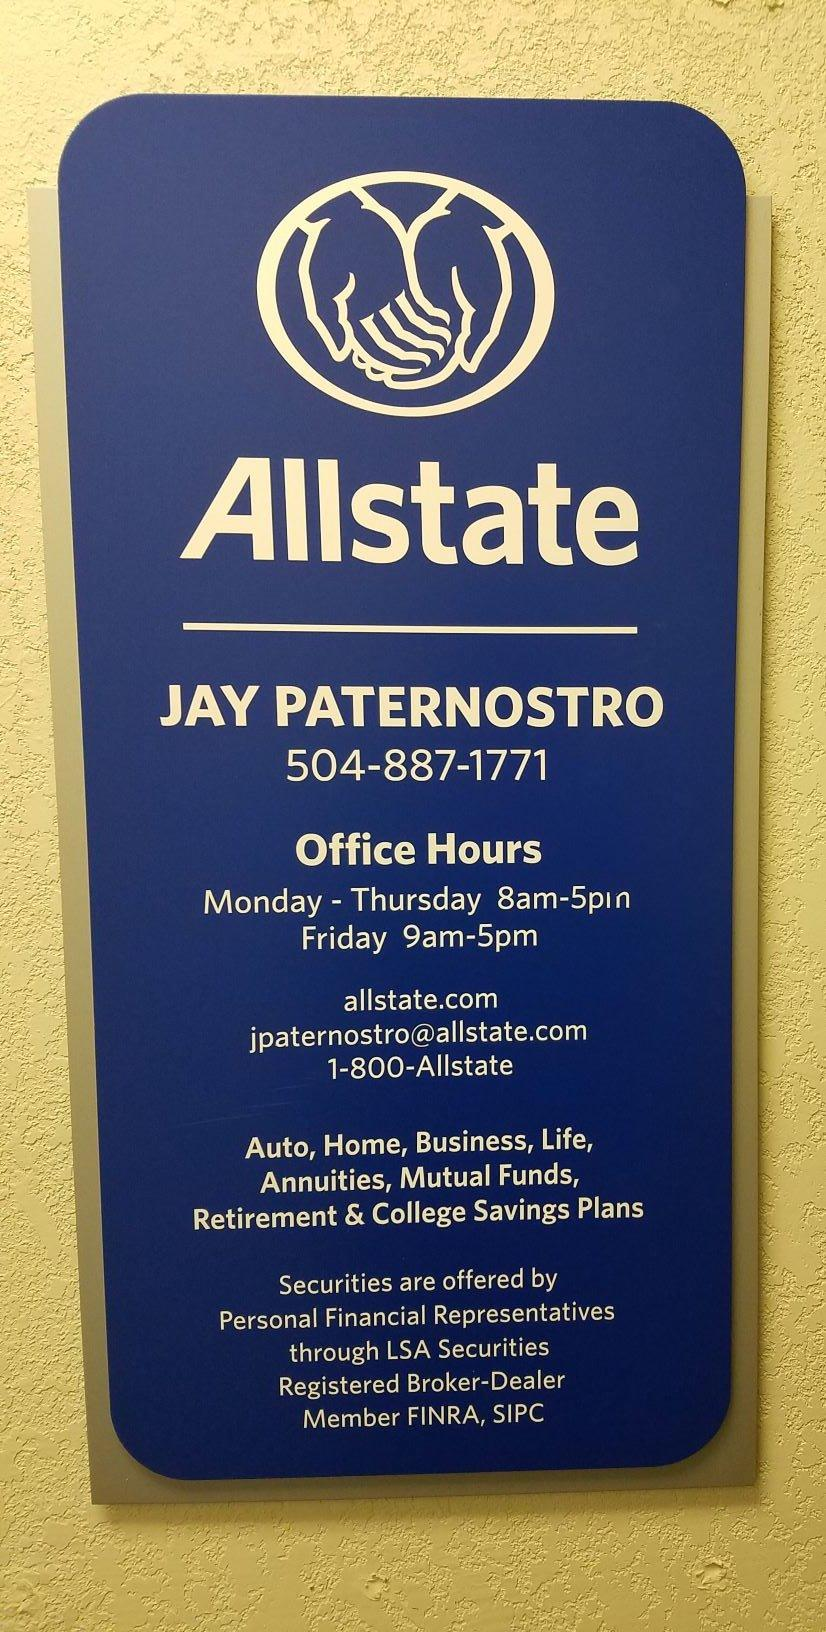 Jay Paternostro: Allstate Insurance image 4